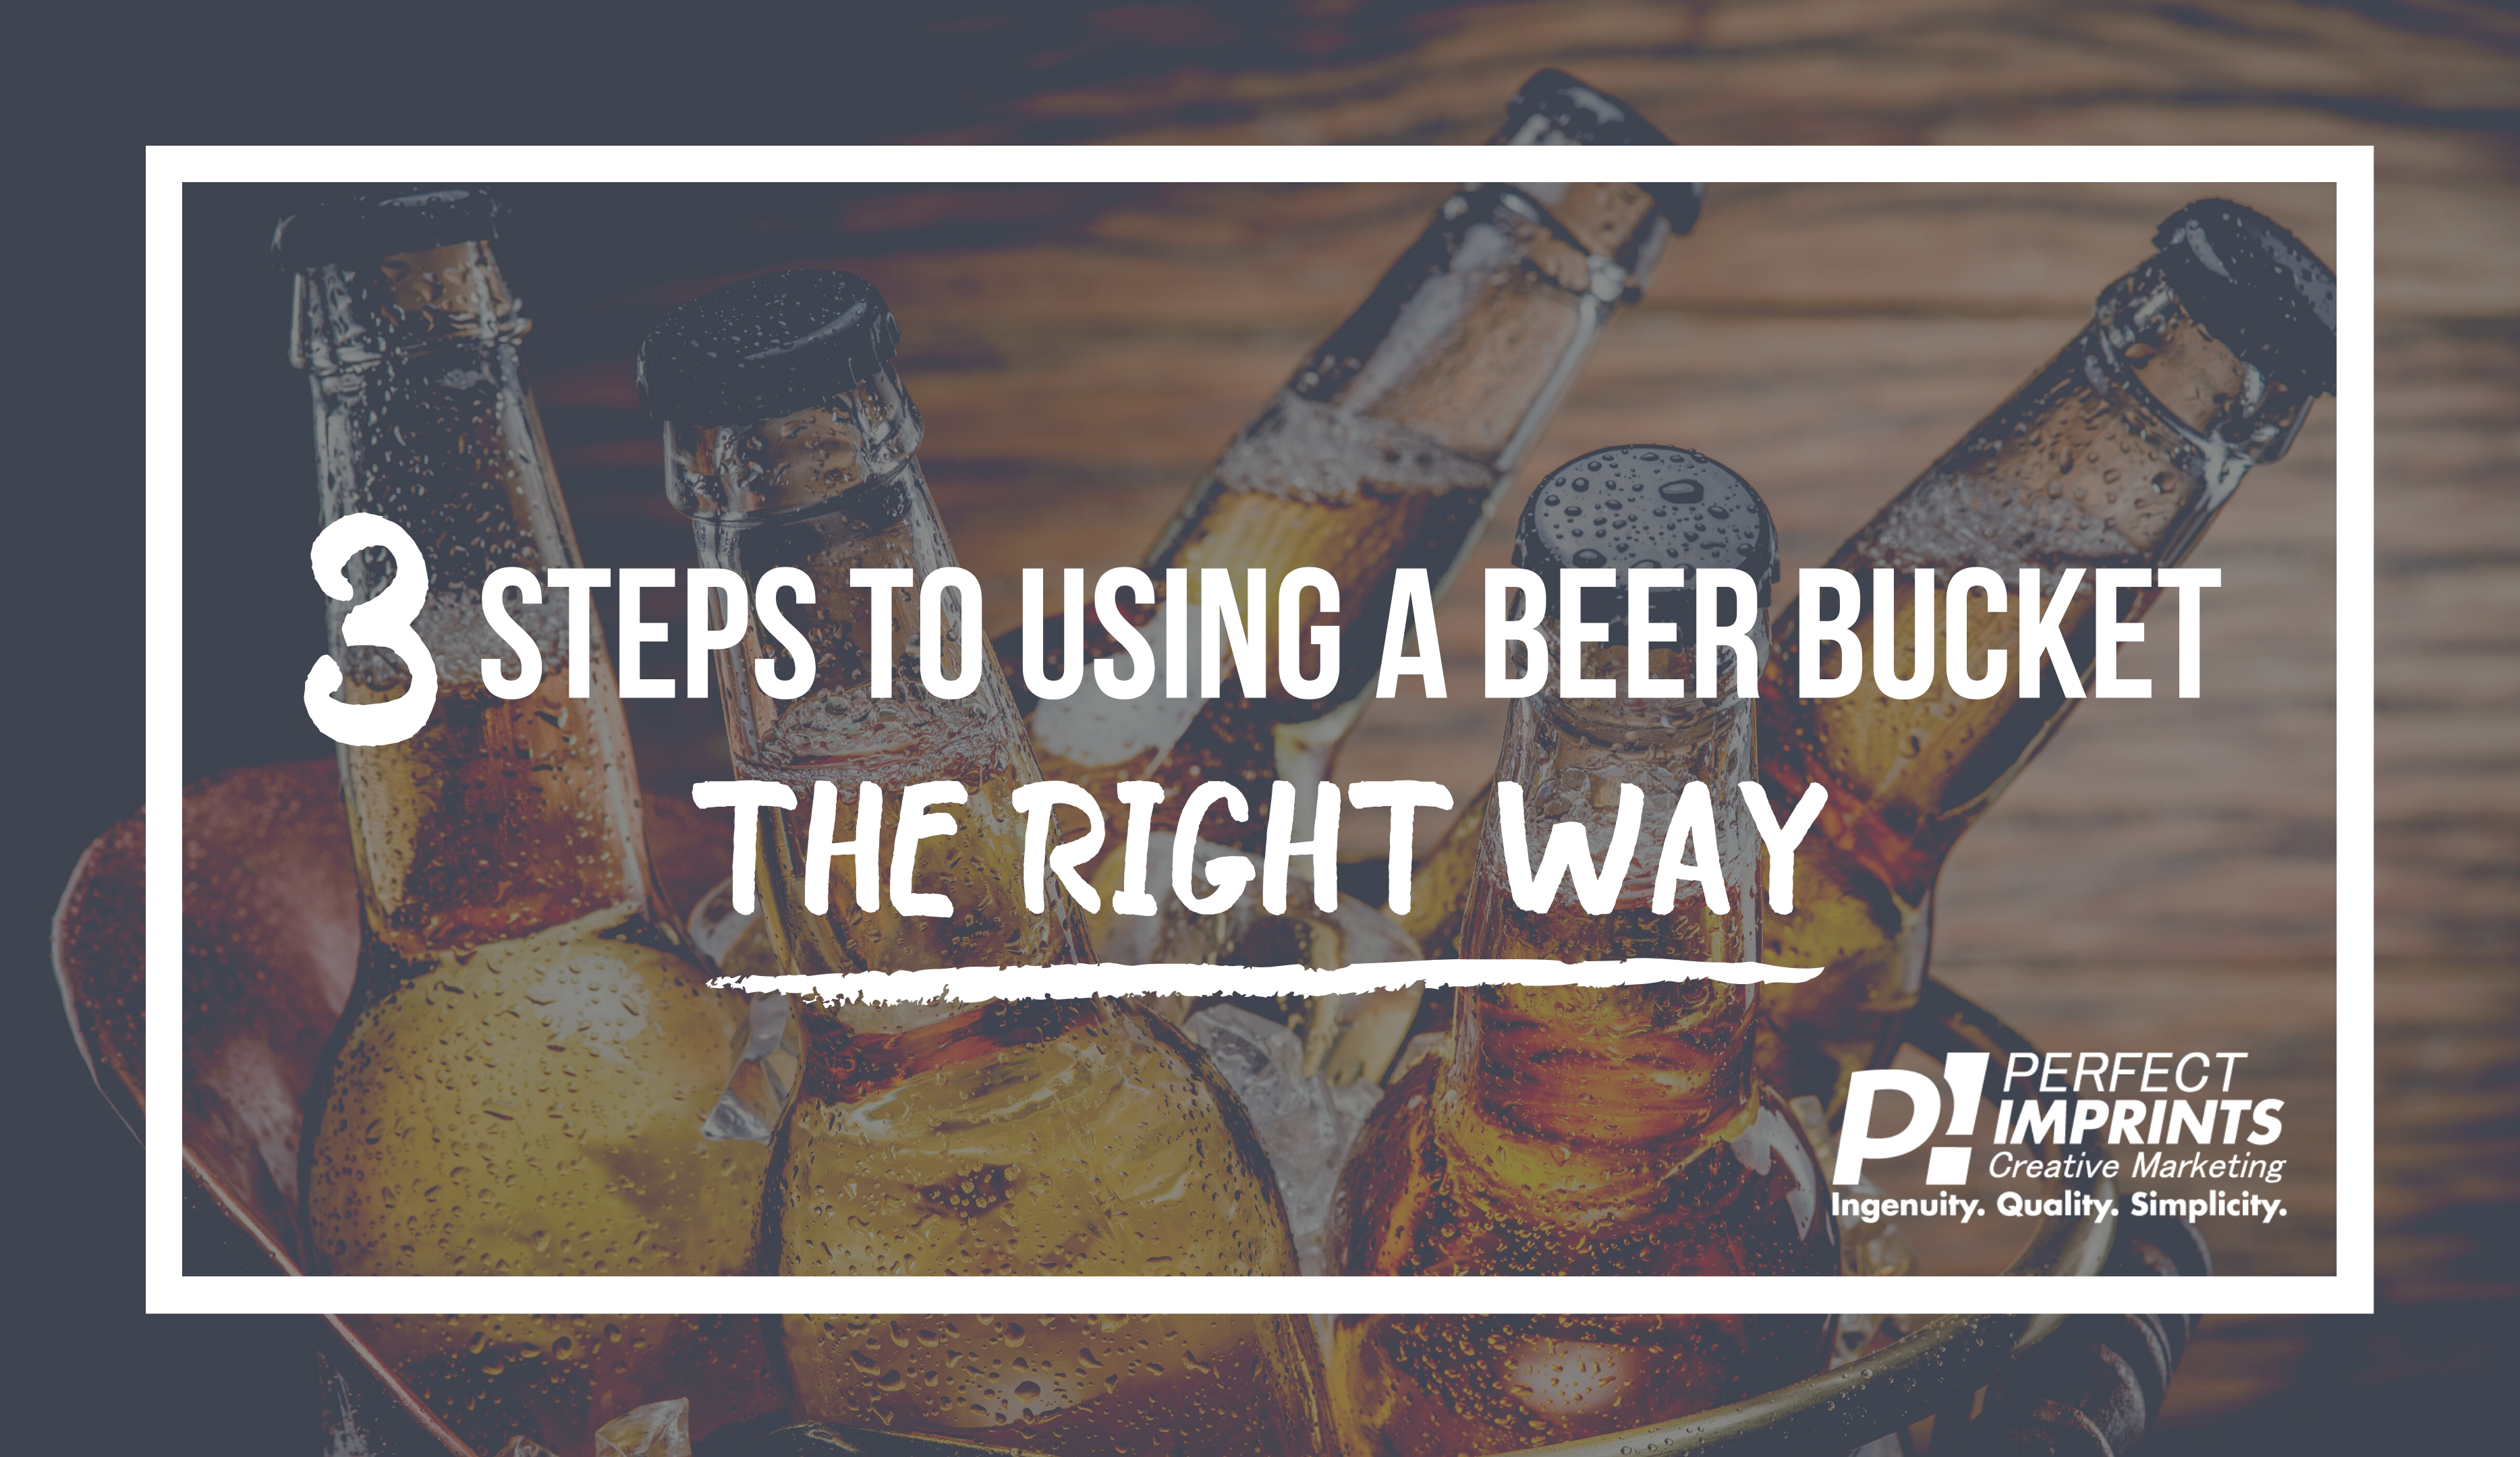 Beer Buckets: They Are All Not Made Equal